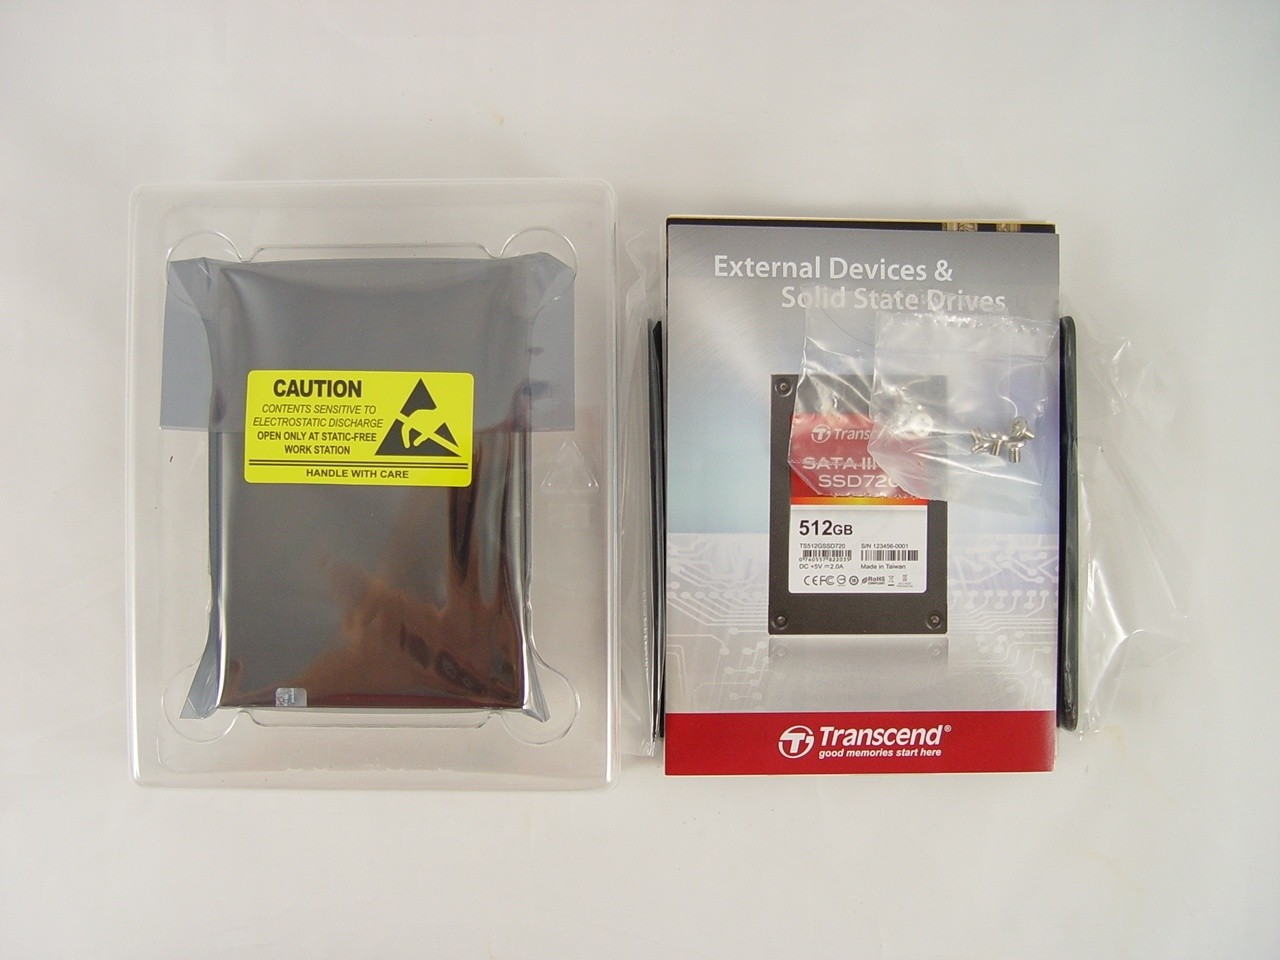 transcend_ssd720_256gb_ssd_review